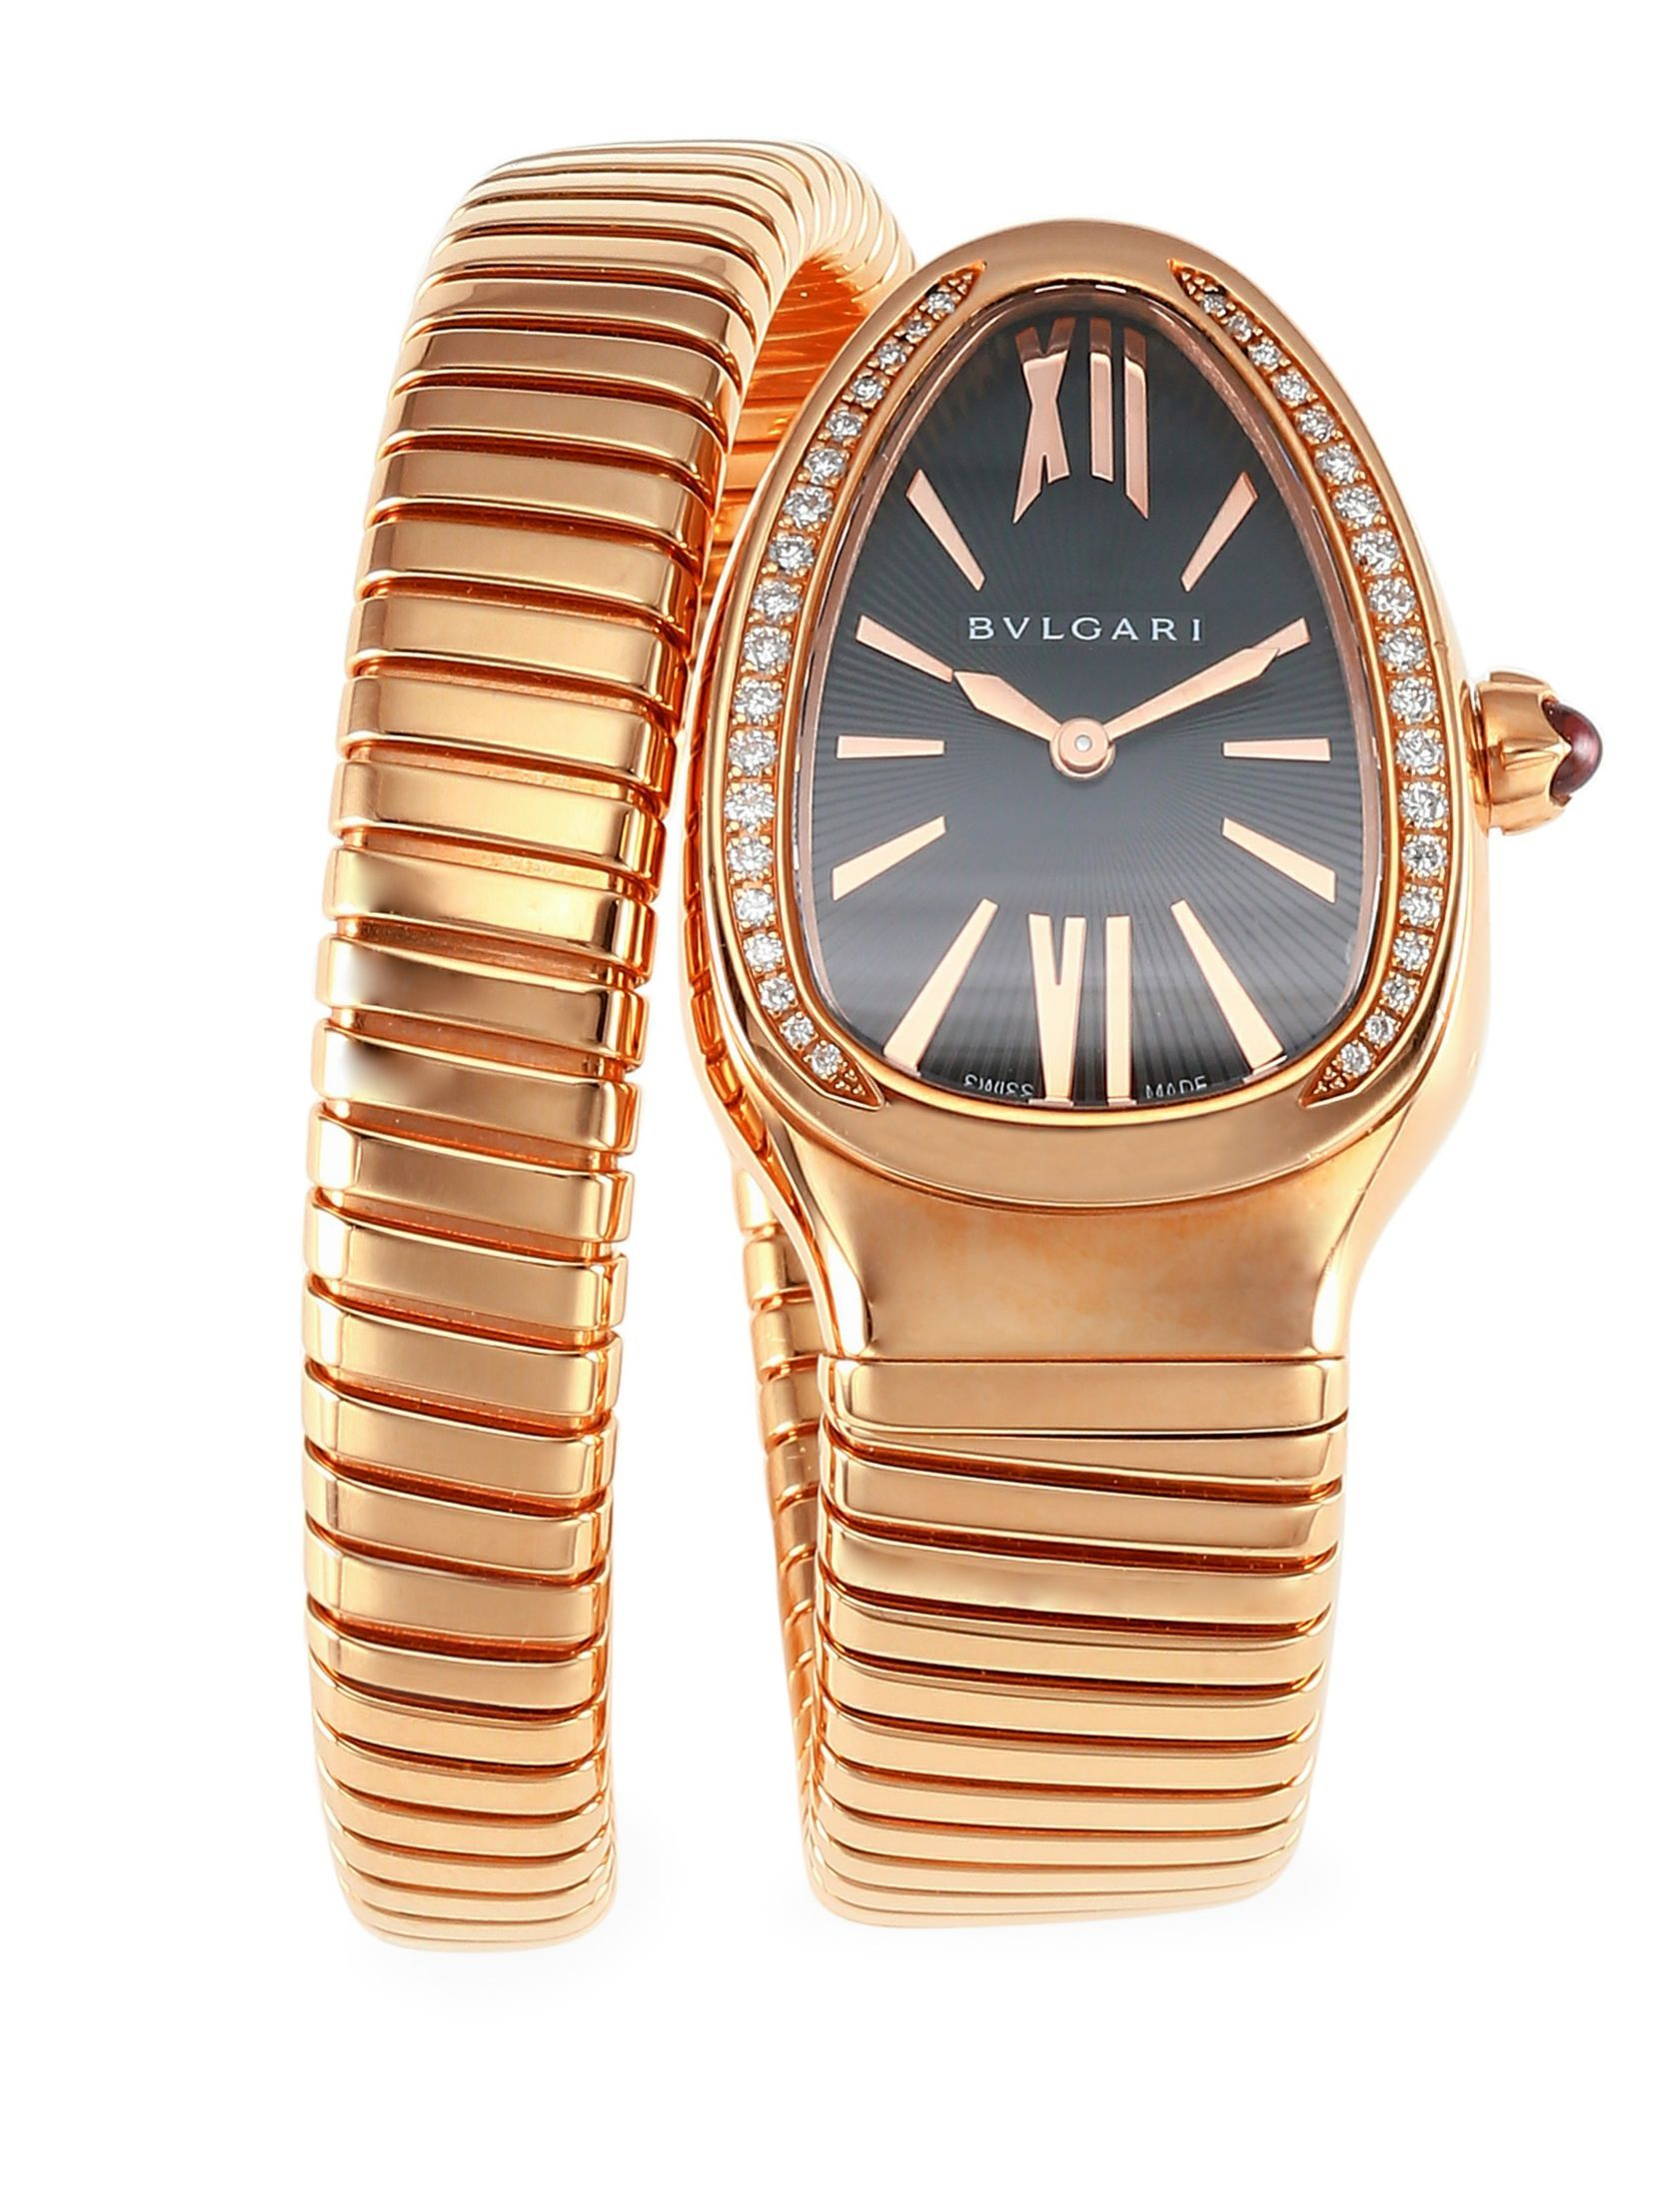 Bvlgari serpenti diamond rose gold single twist bracelet watch